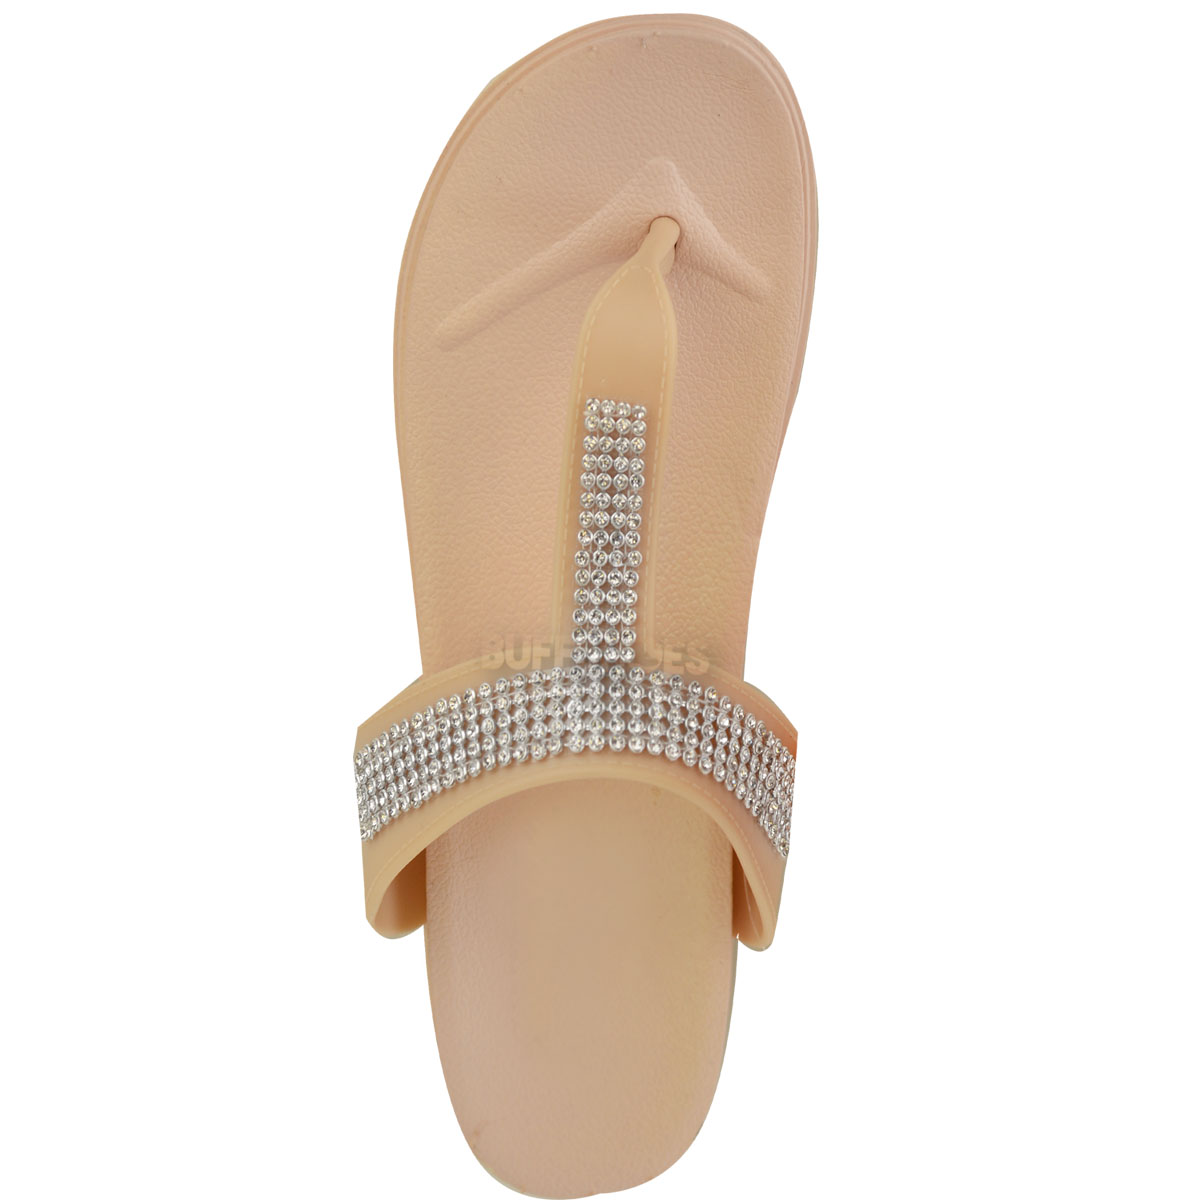 Womens-Ladies-Summer-Jelly-Sandals-Diamante-Wedge-Cushioned-Comfort-Shoes-Size thumbnail 13